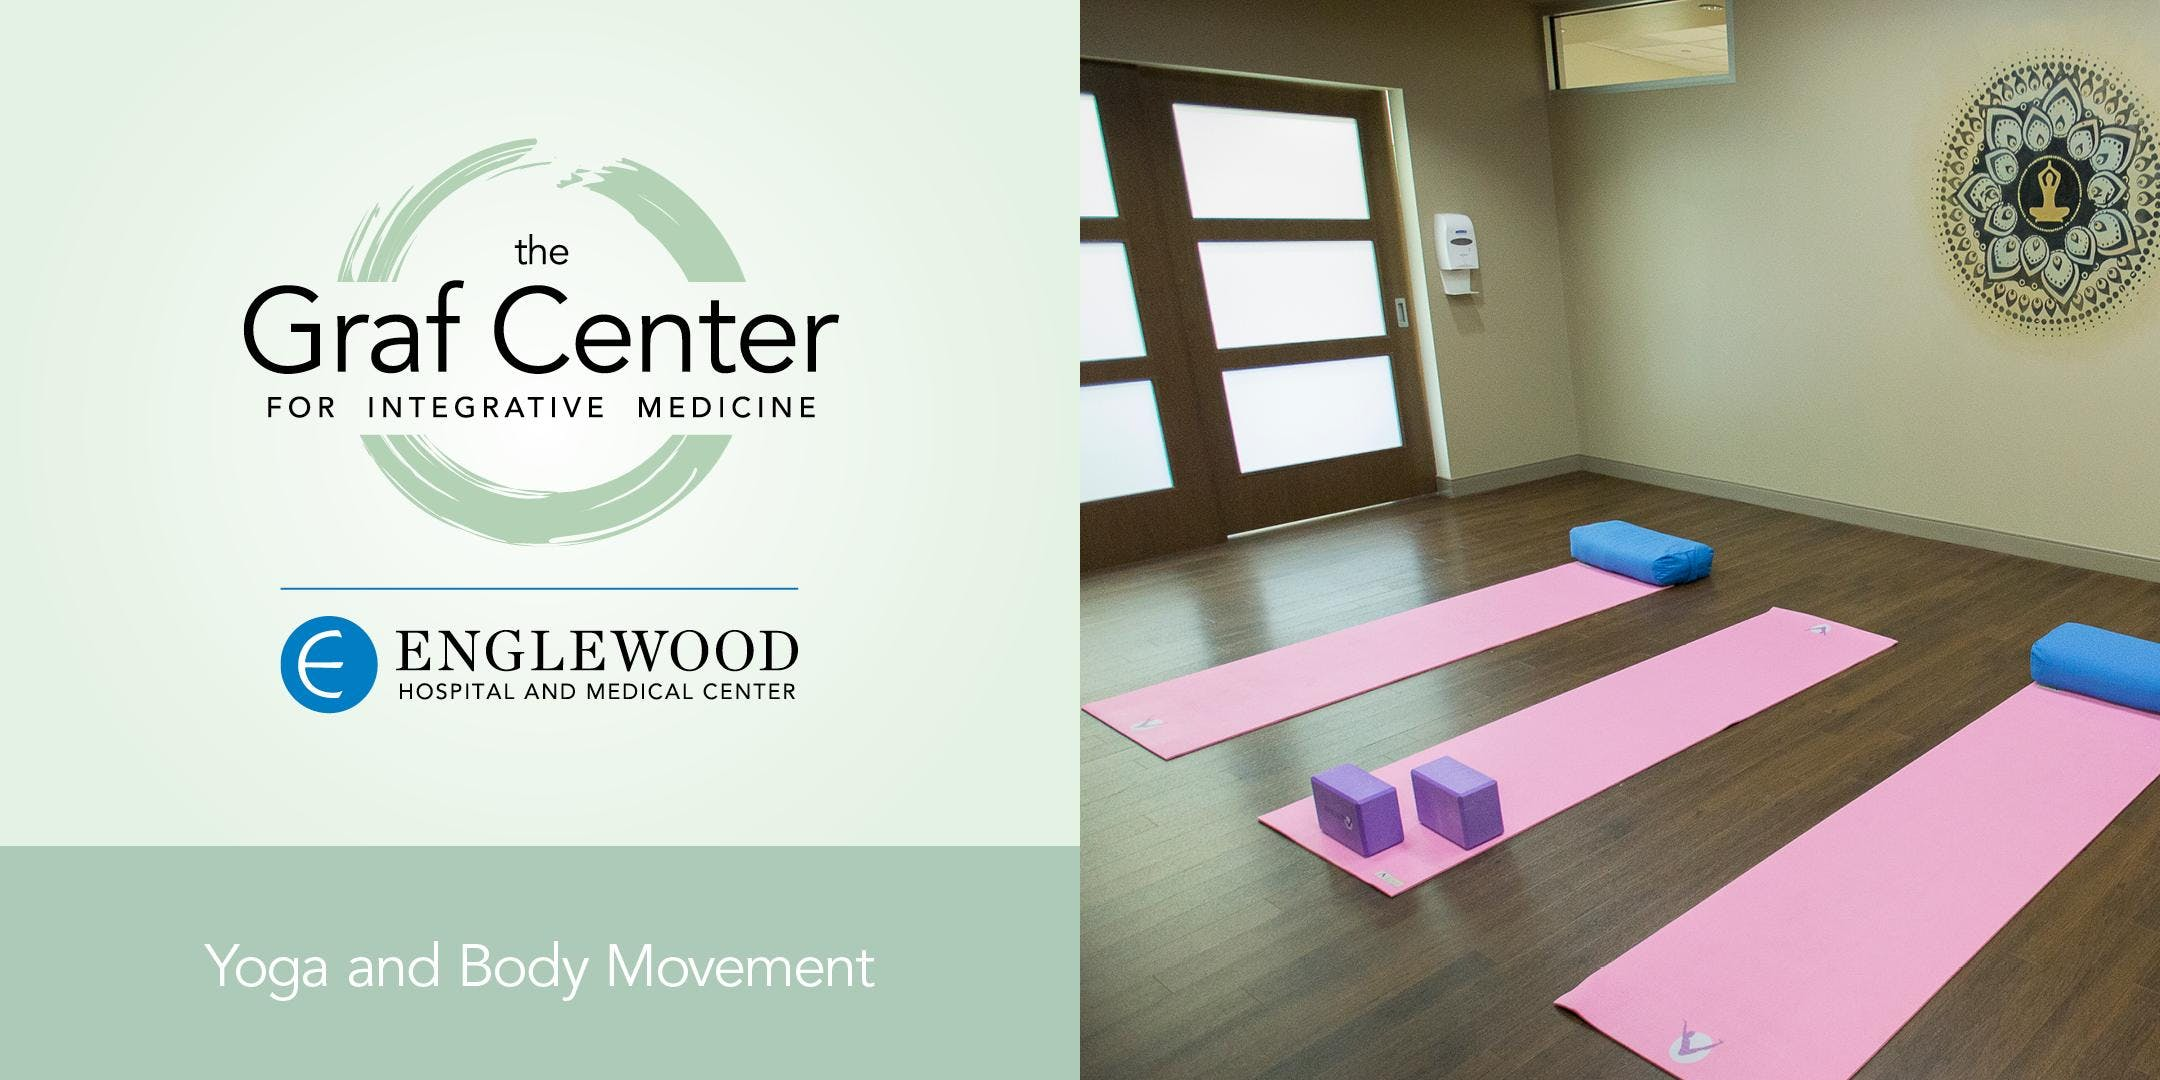 More info: Gentle Yoga - Thursday Mornings